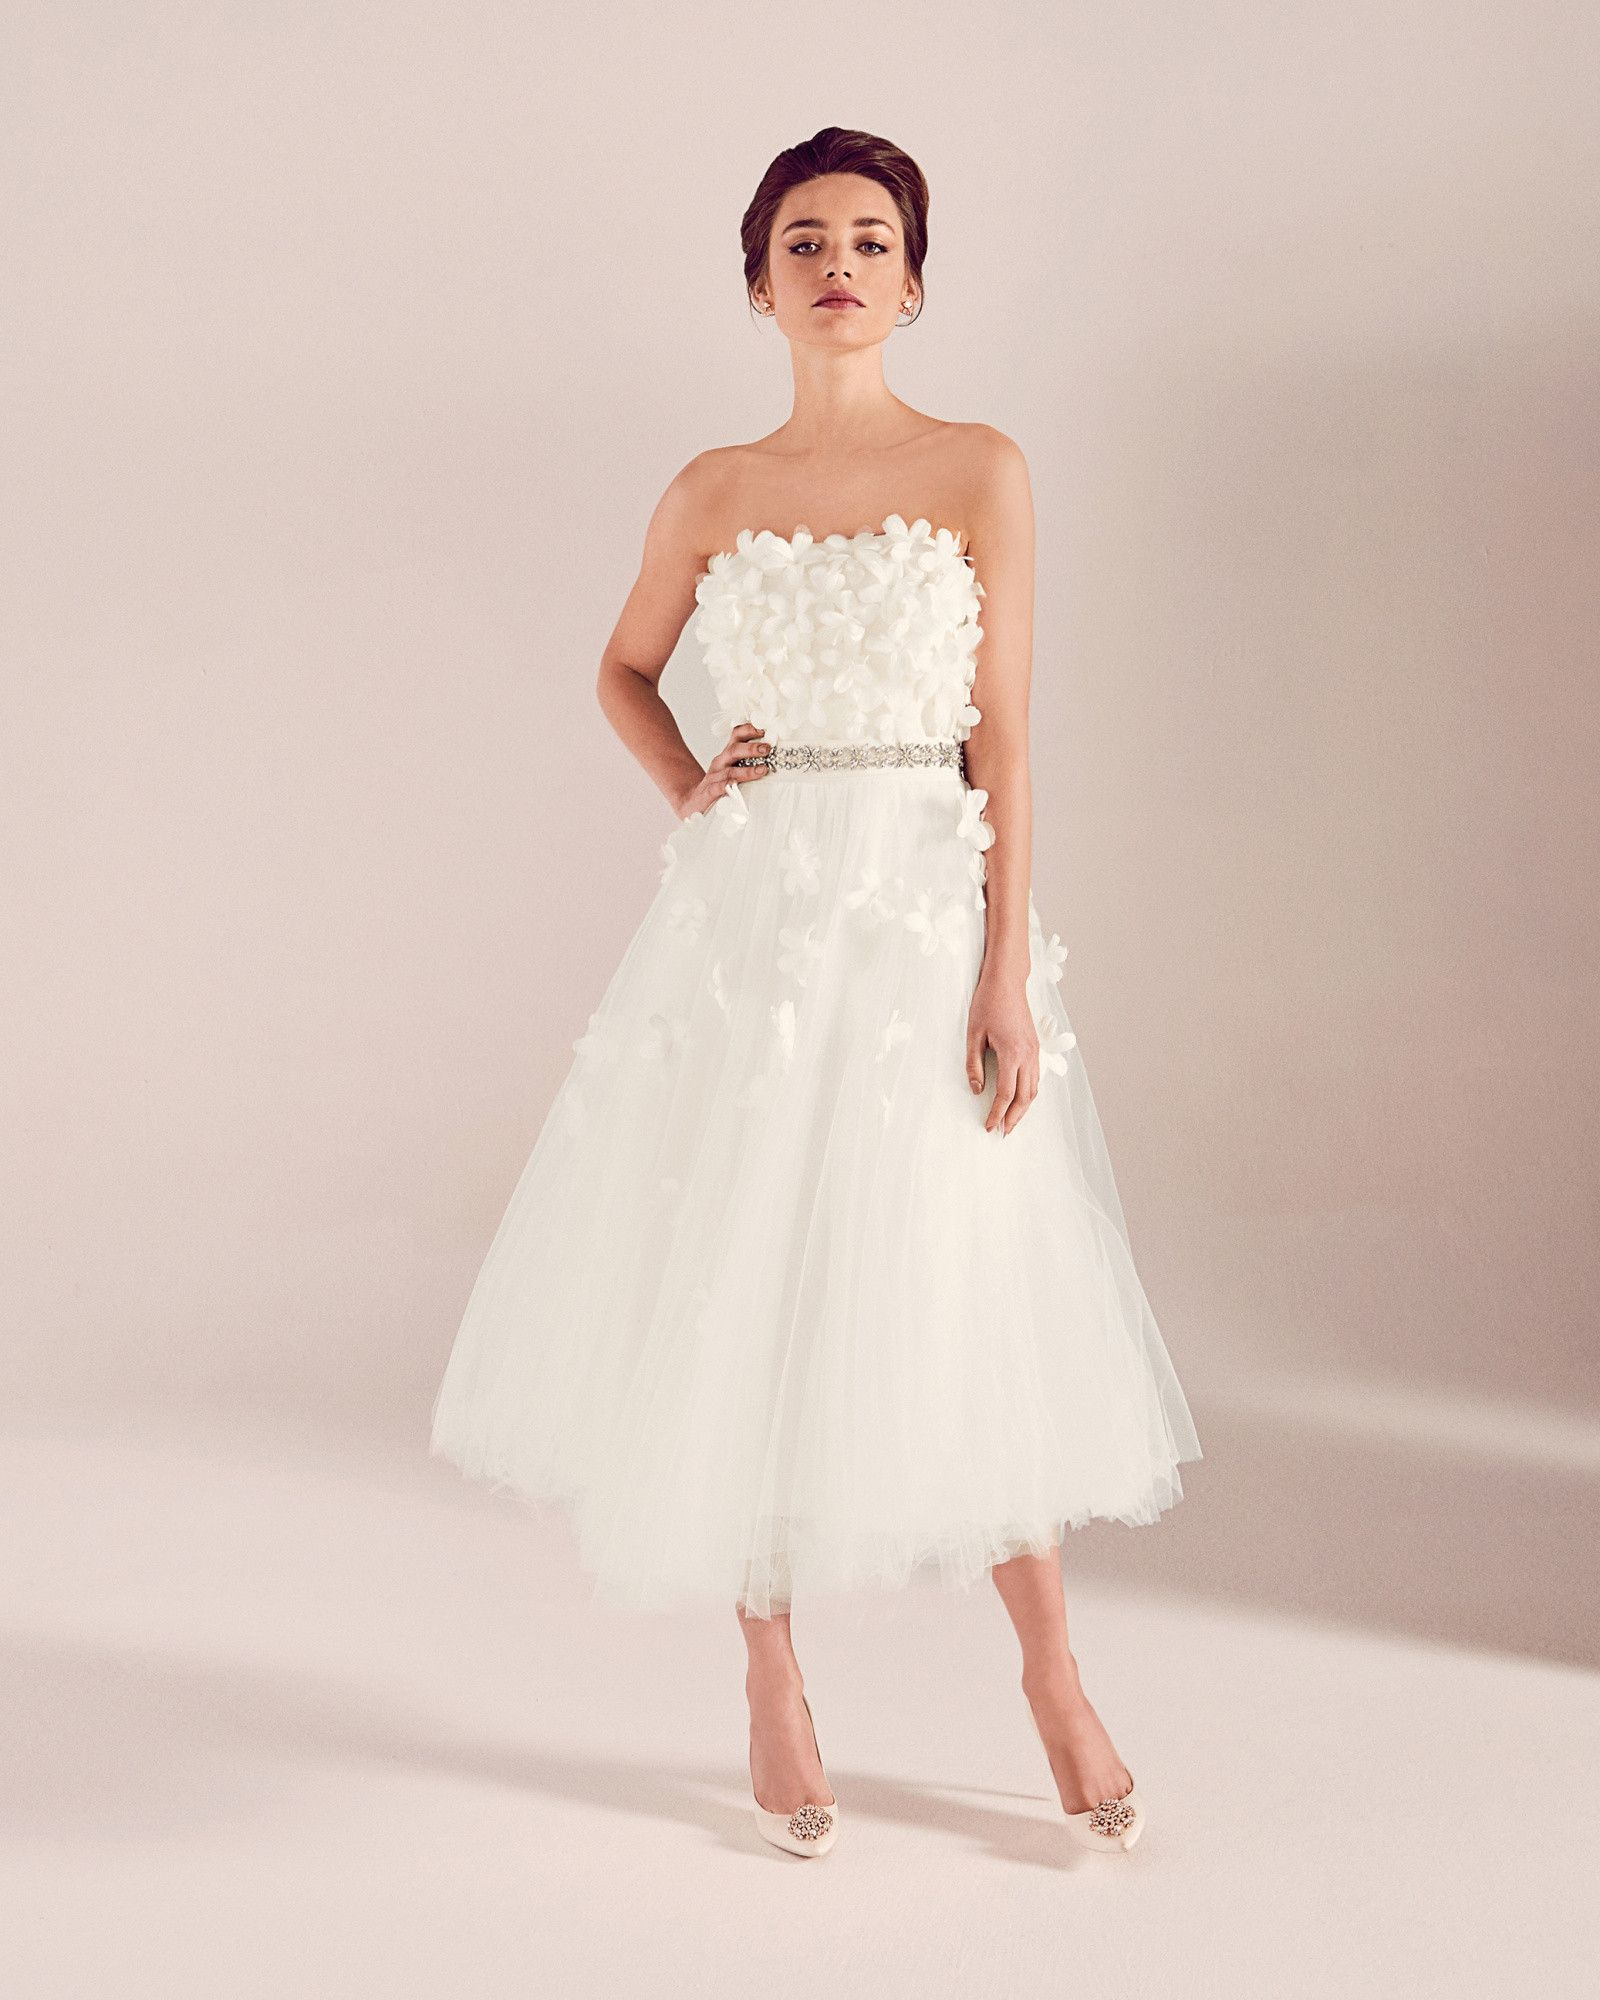 This Ted Baker wedding dress is amazing and would fit in perfectly